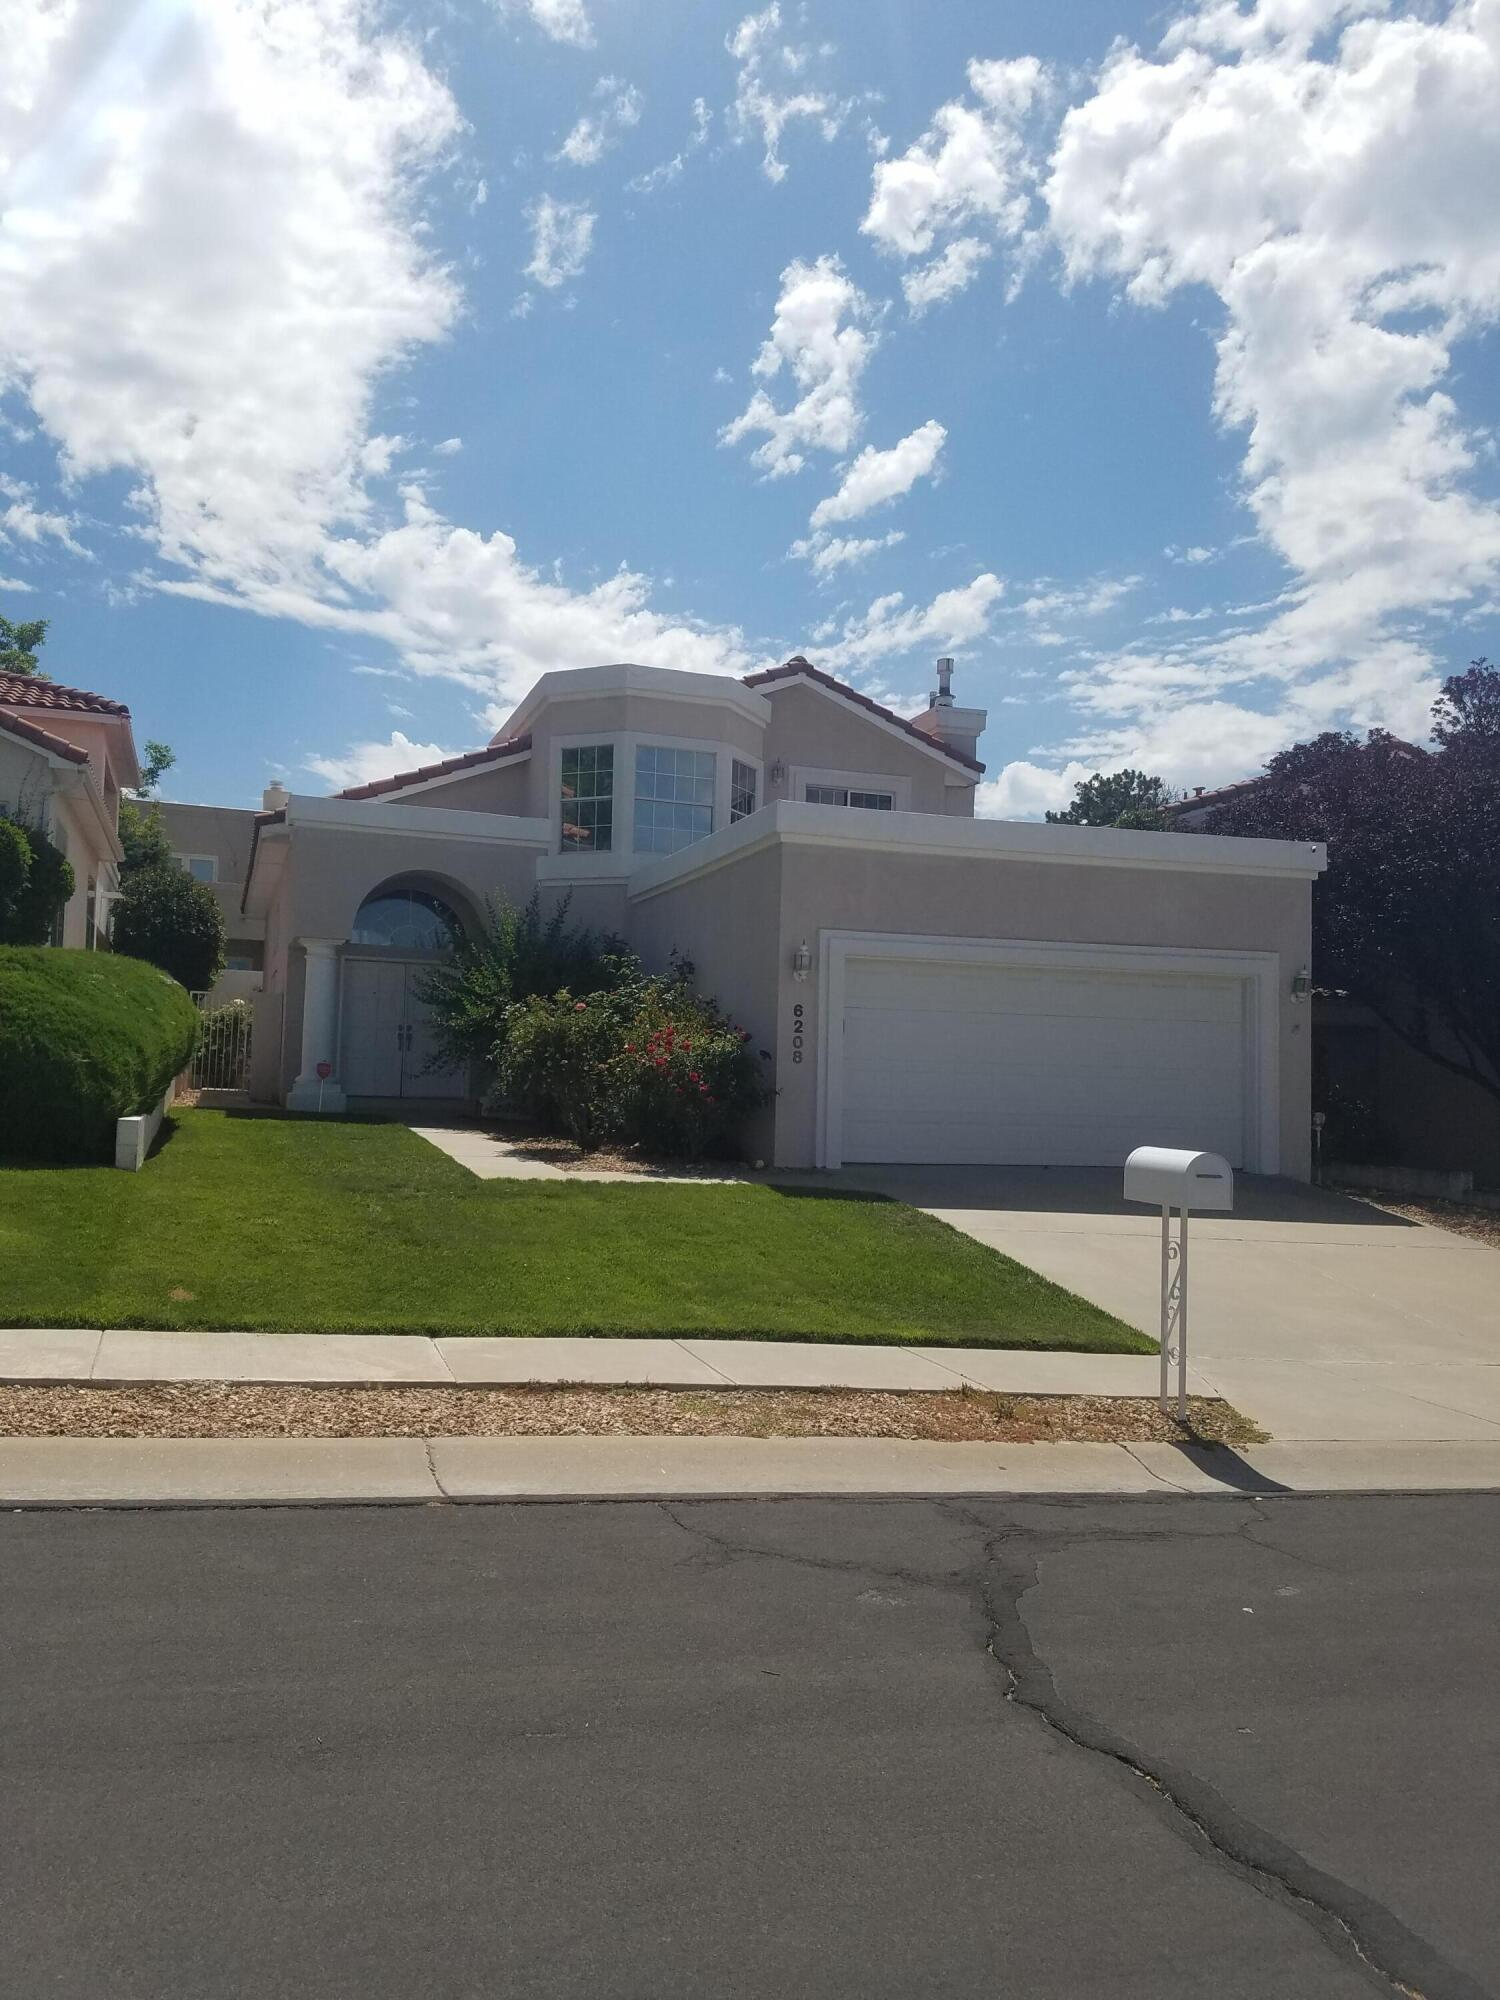 Remodeled and back on the market.  Charming floorplan with  soaring ceilings in great room and dining room.  Wood floors and some carpet upstairs.  Freshly painted,  Remodeled kitchen, new granite countertops, sinks, fixtures, tile surrounds, and appliances.  Upper deck has dramatic views of the beautiful sunsets.  Location! Location!